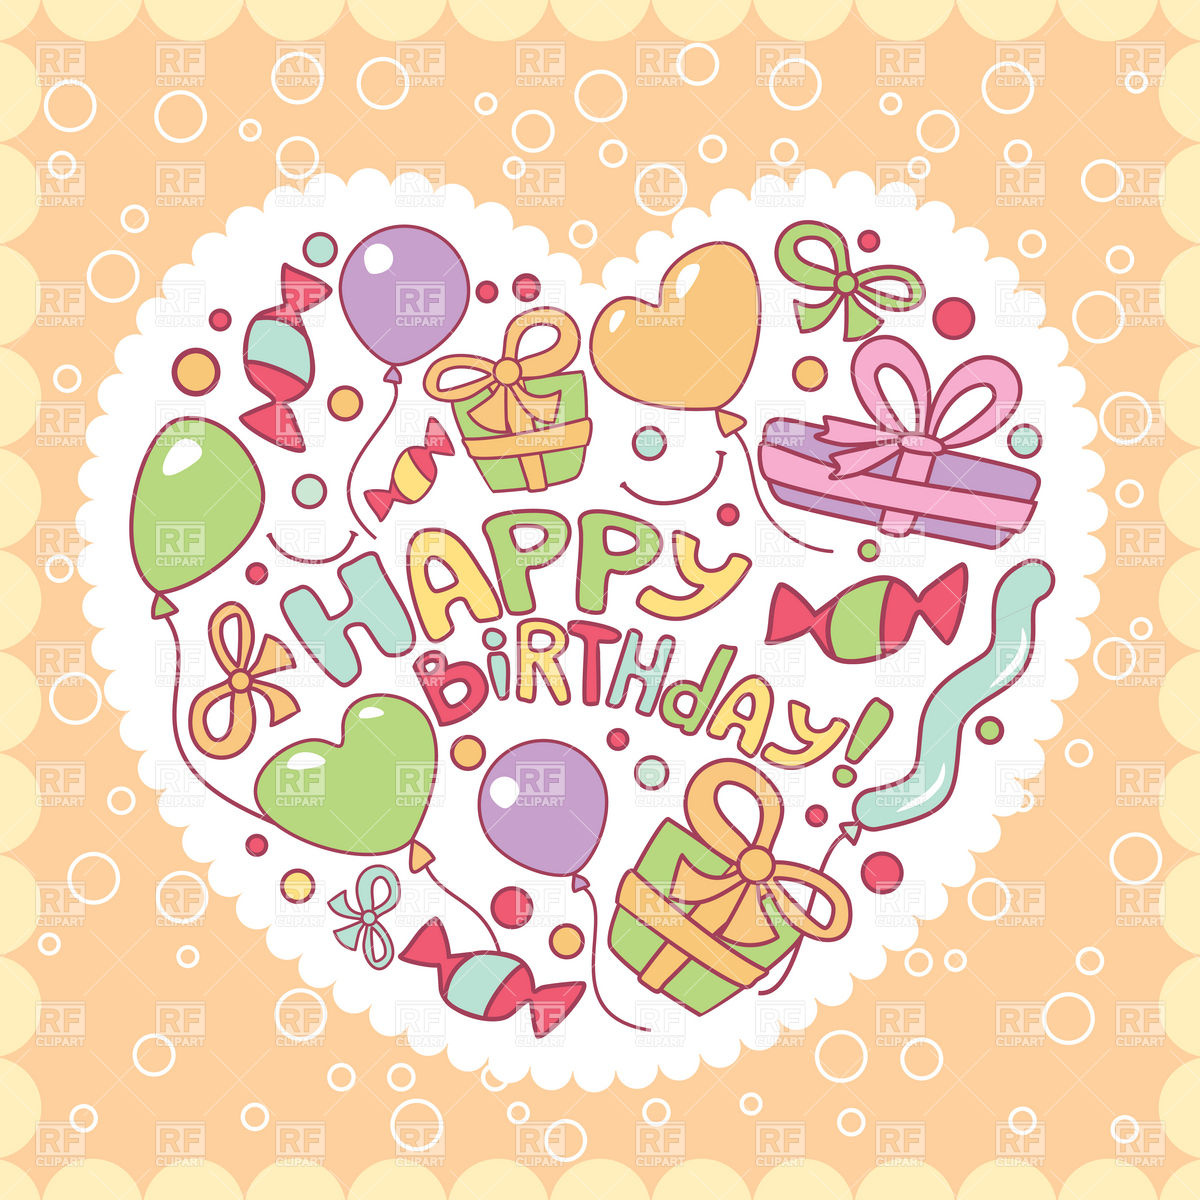 happy birthday wishes images free download ; free-clip-art-birthday-cards-10